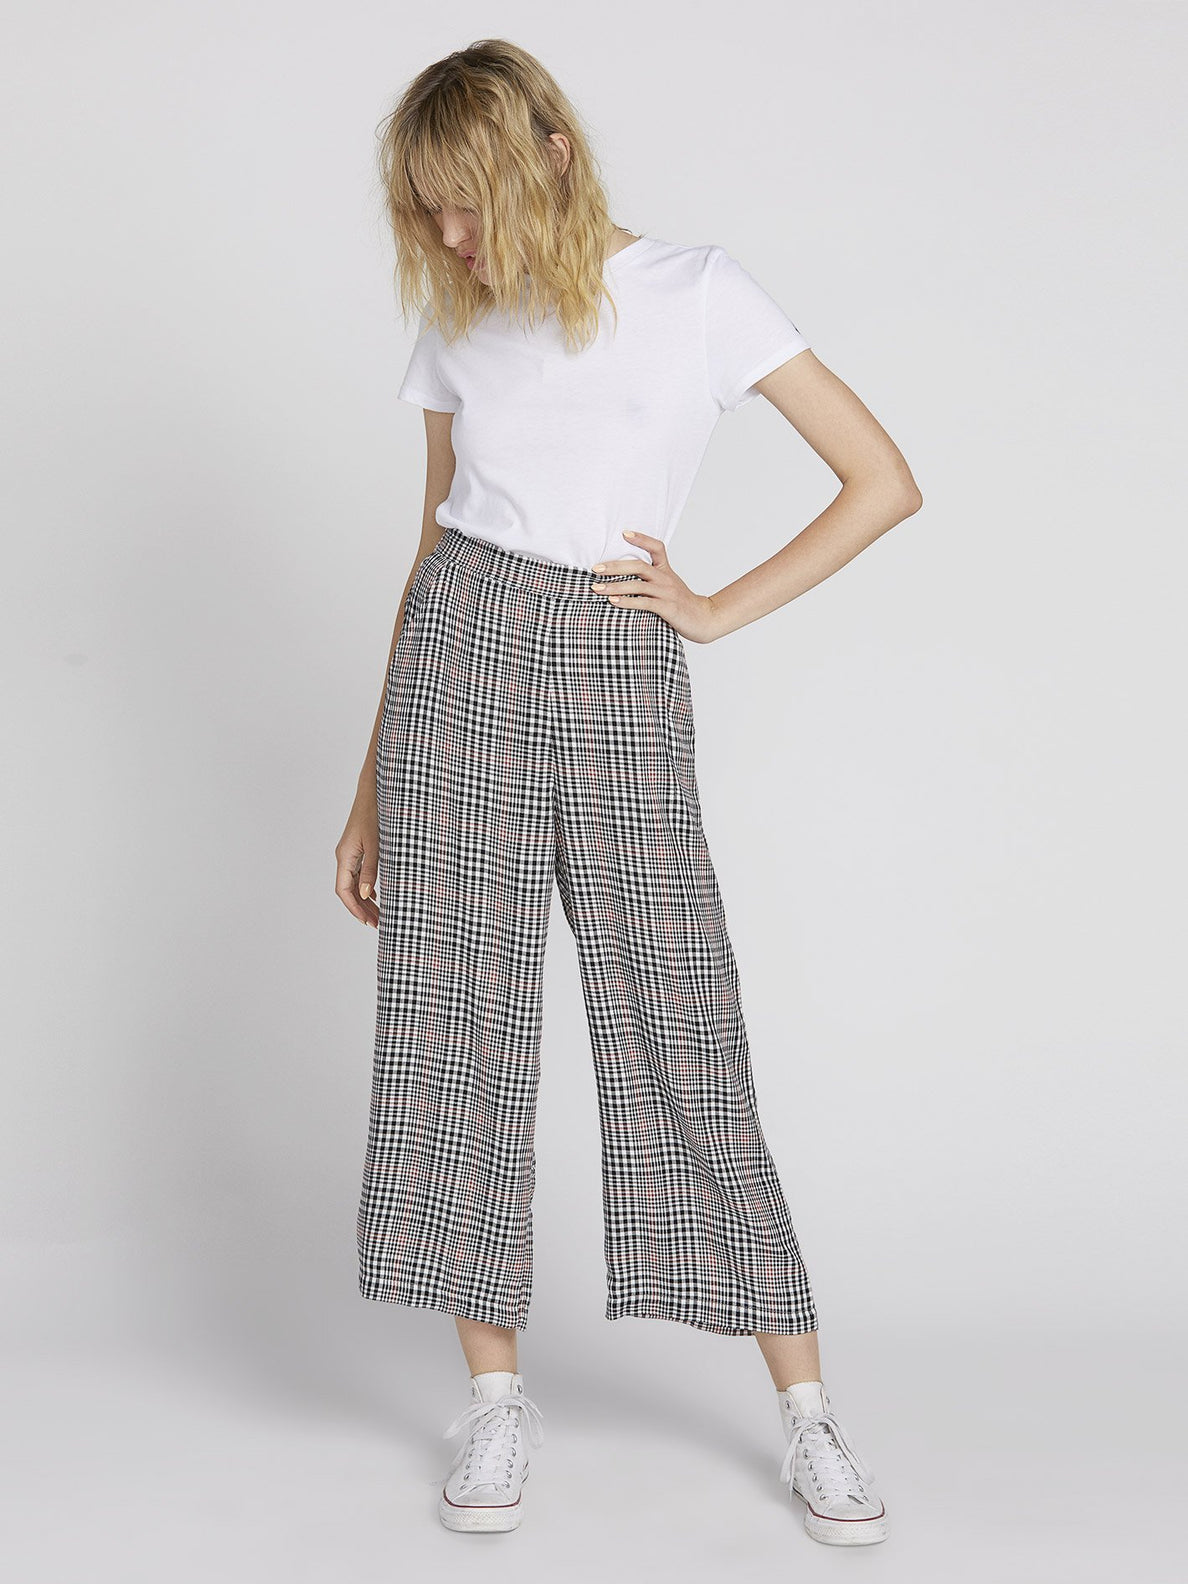 Fad Friend Pant - Black Plaid (B1131901_BLP) [4]